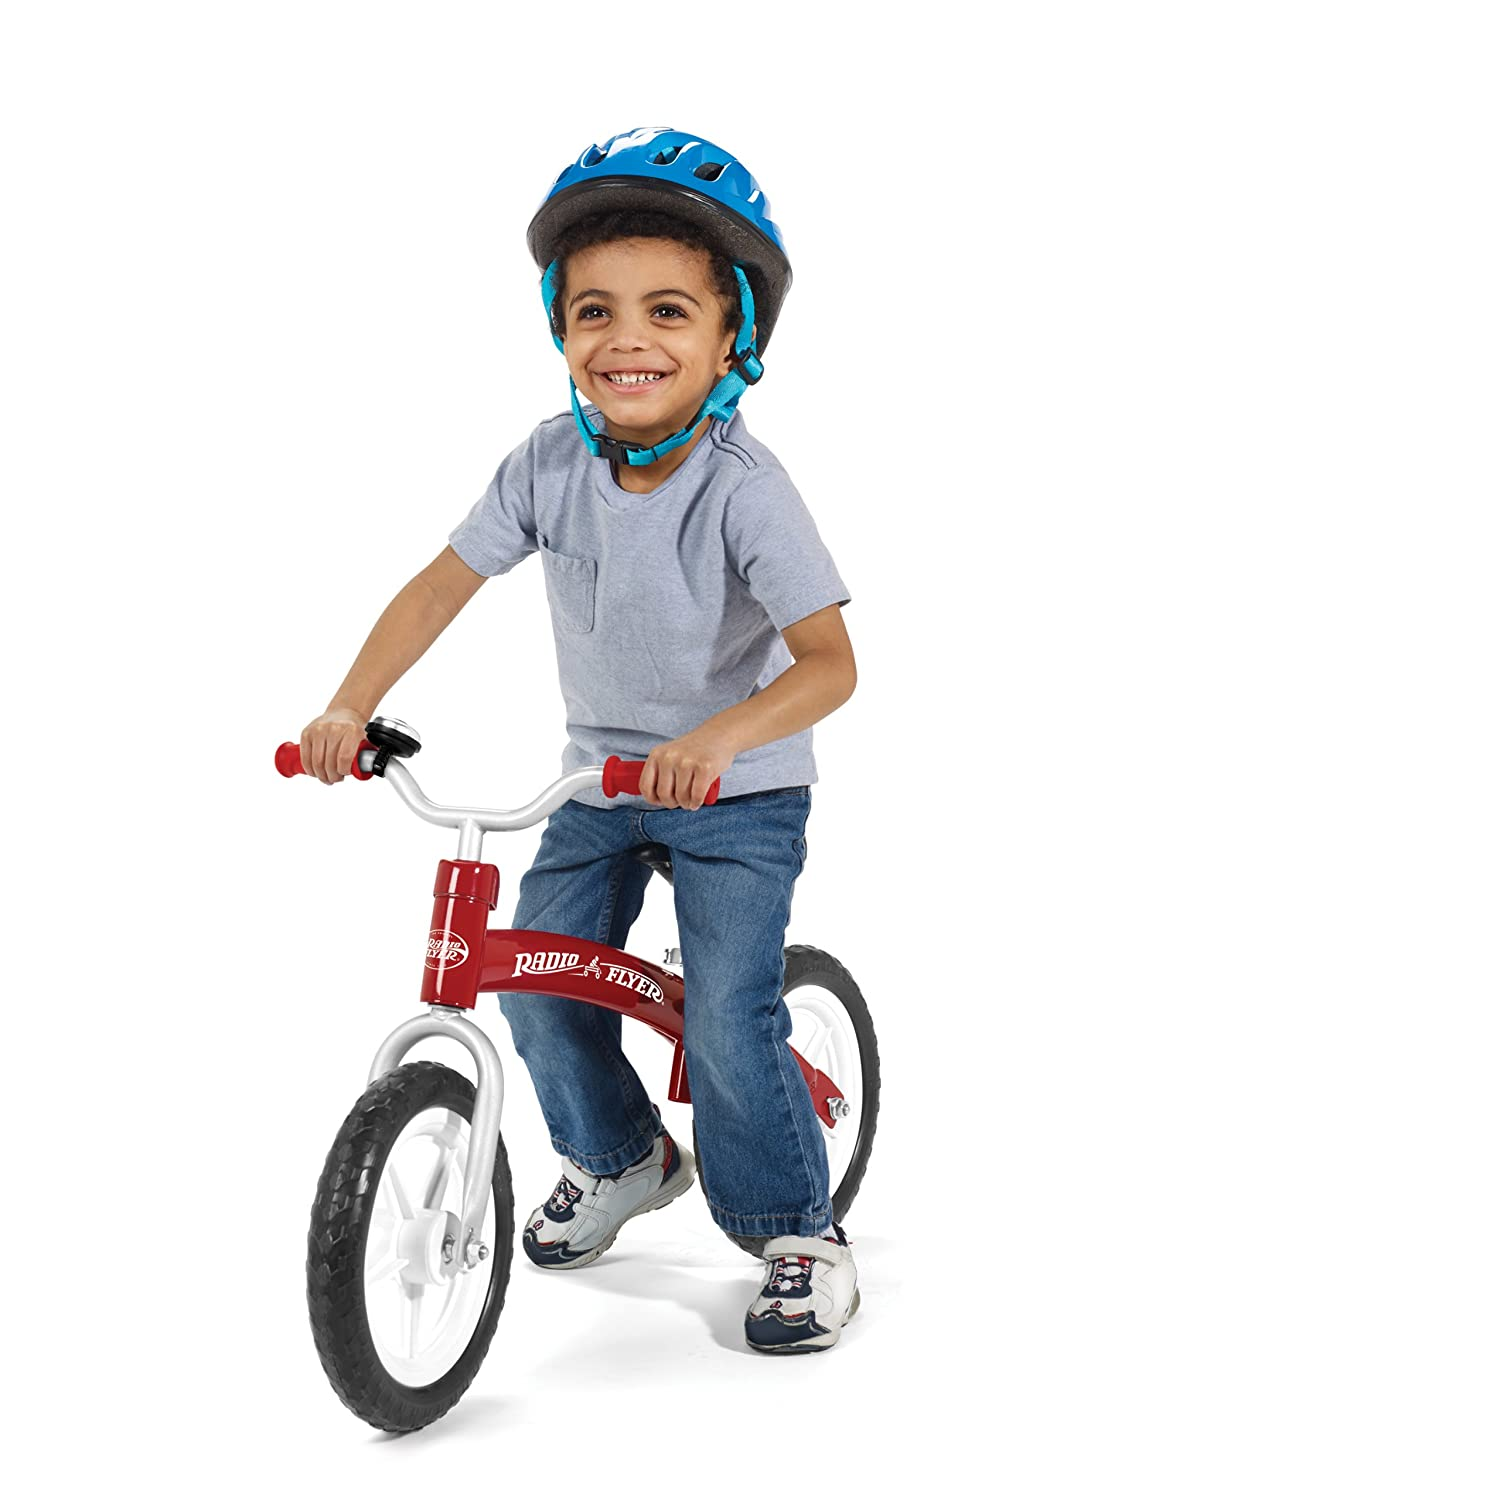 Toys For 3 Year Old Boys 2014 : Best toys for kids to make your year old